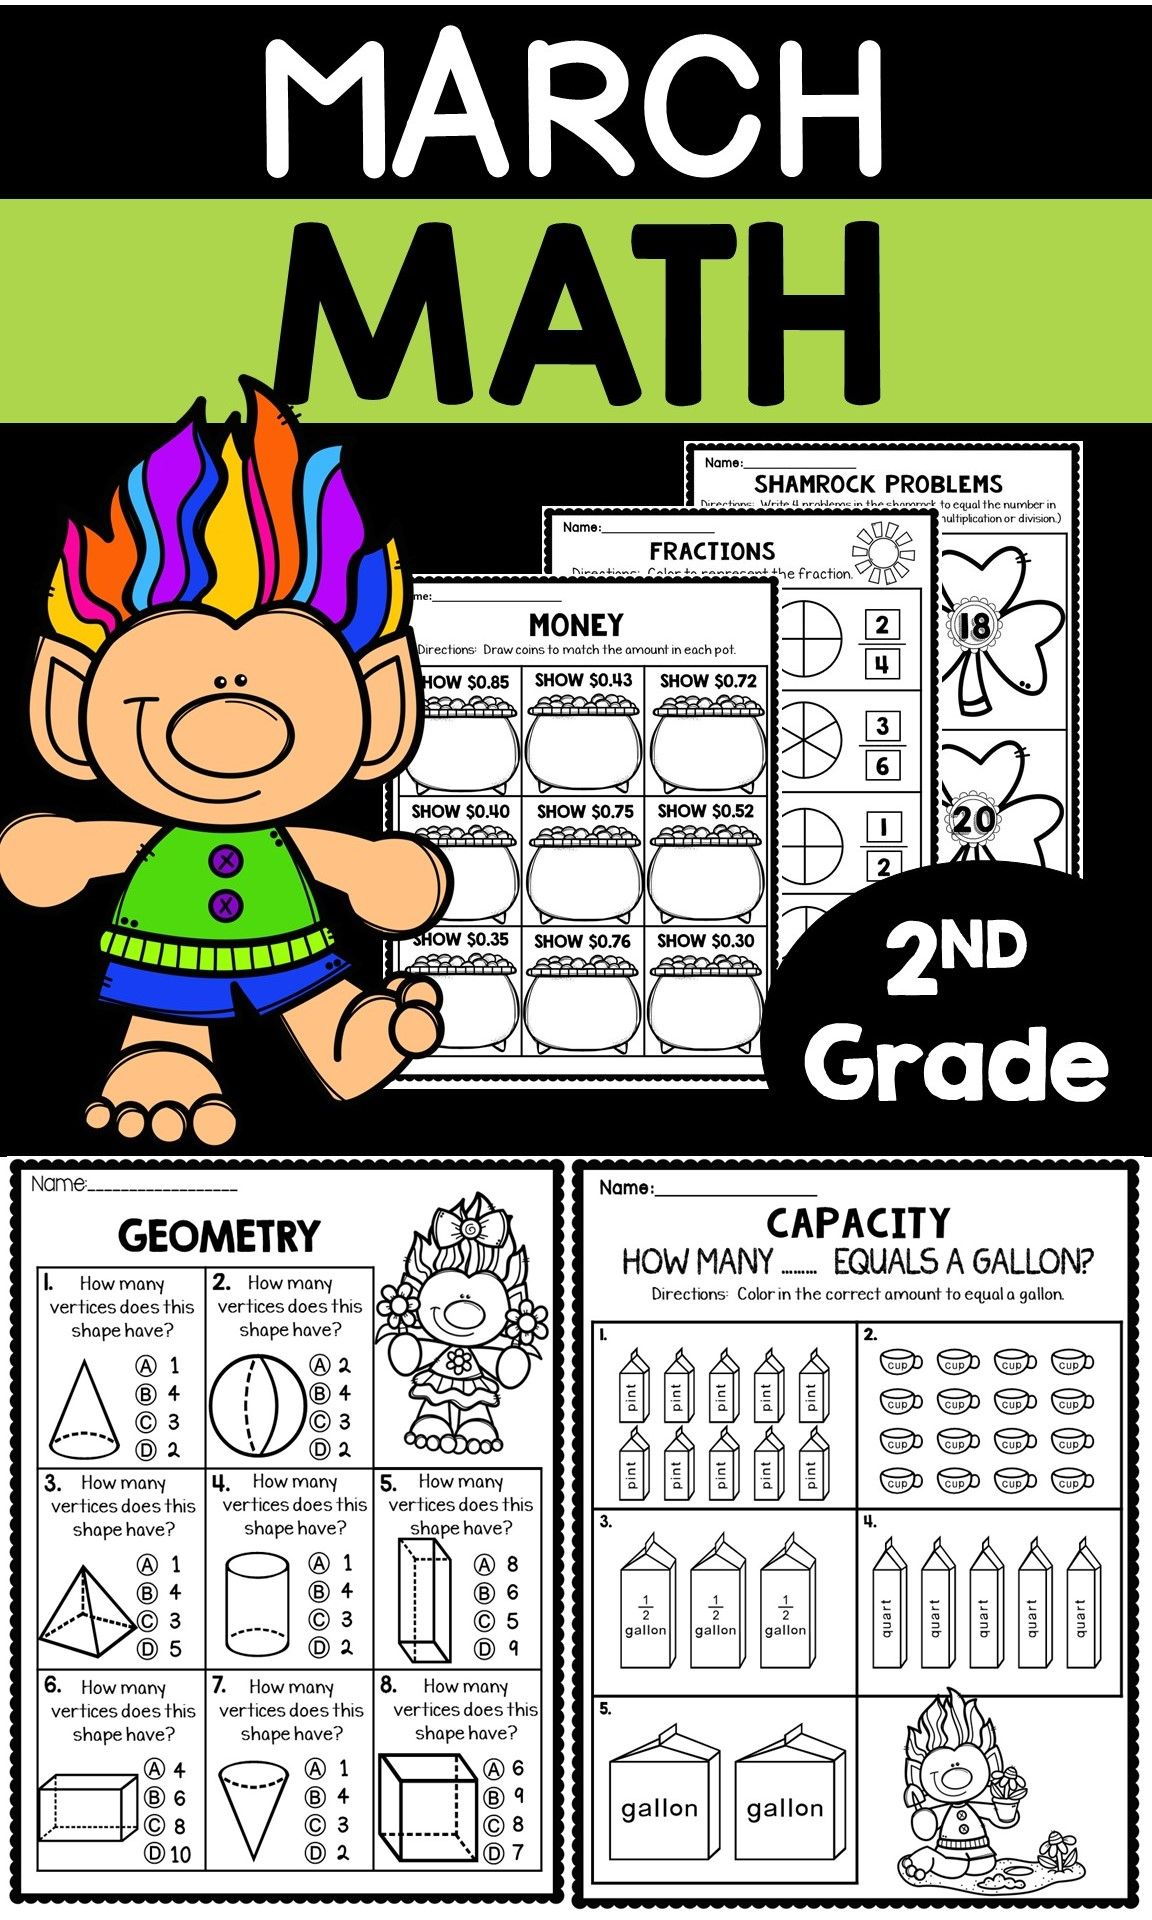 March Worksheets for 2nd Grade   March math [ 1920 x 1152 Pixel ]